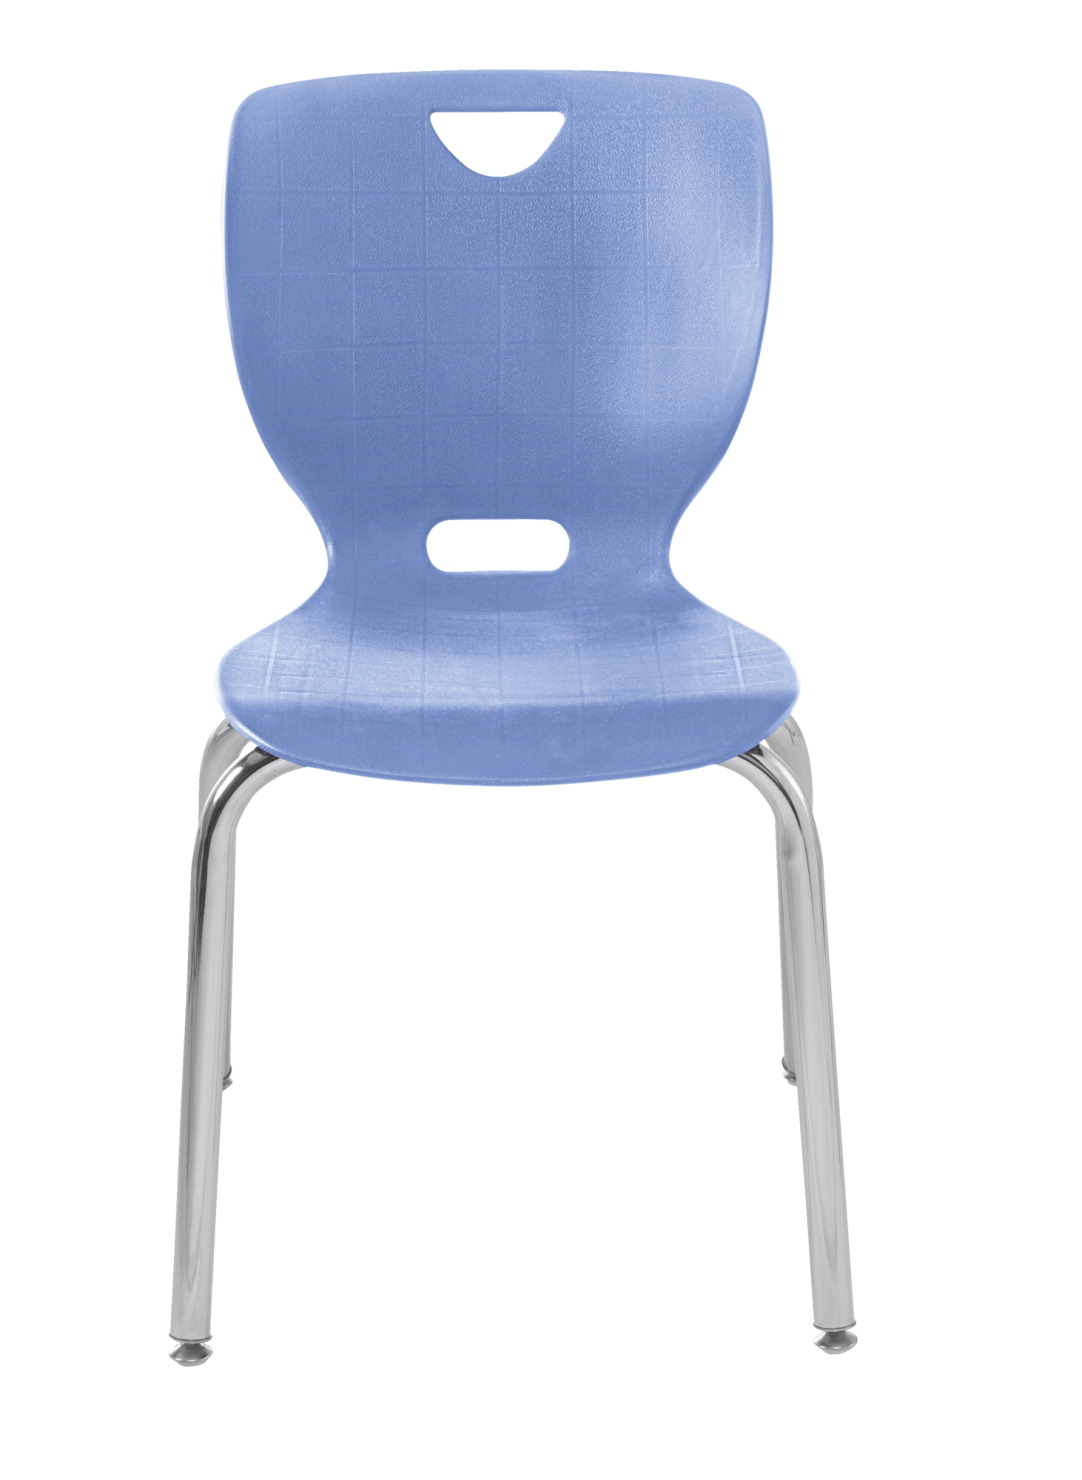 Classroom Select NeoClass Smooth Back Chair, 18 Inch A+ Seat Height, Chrome Frame, Various Options